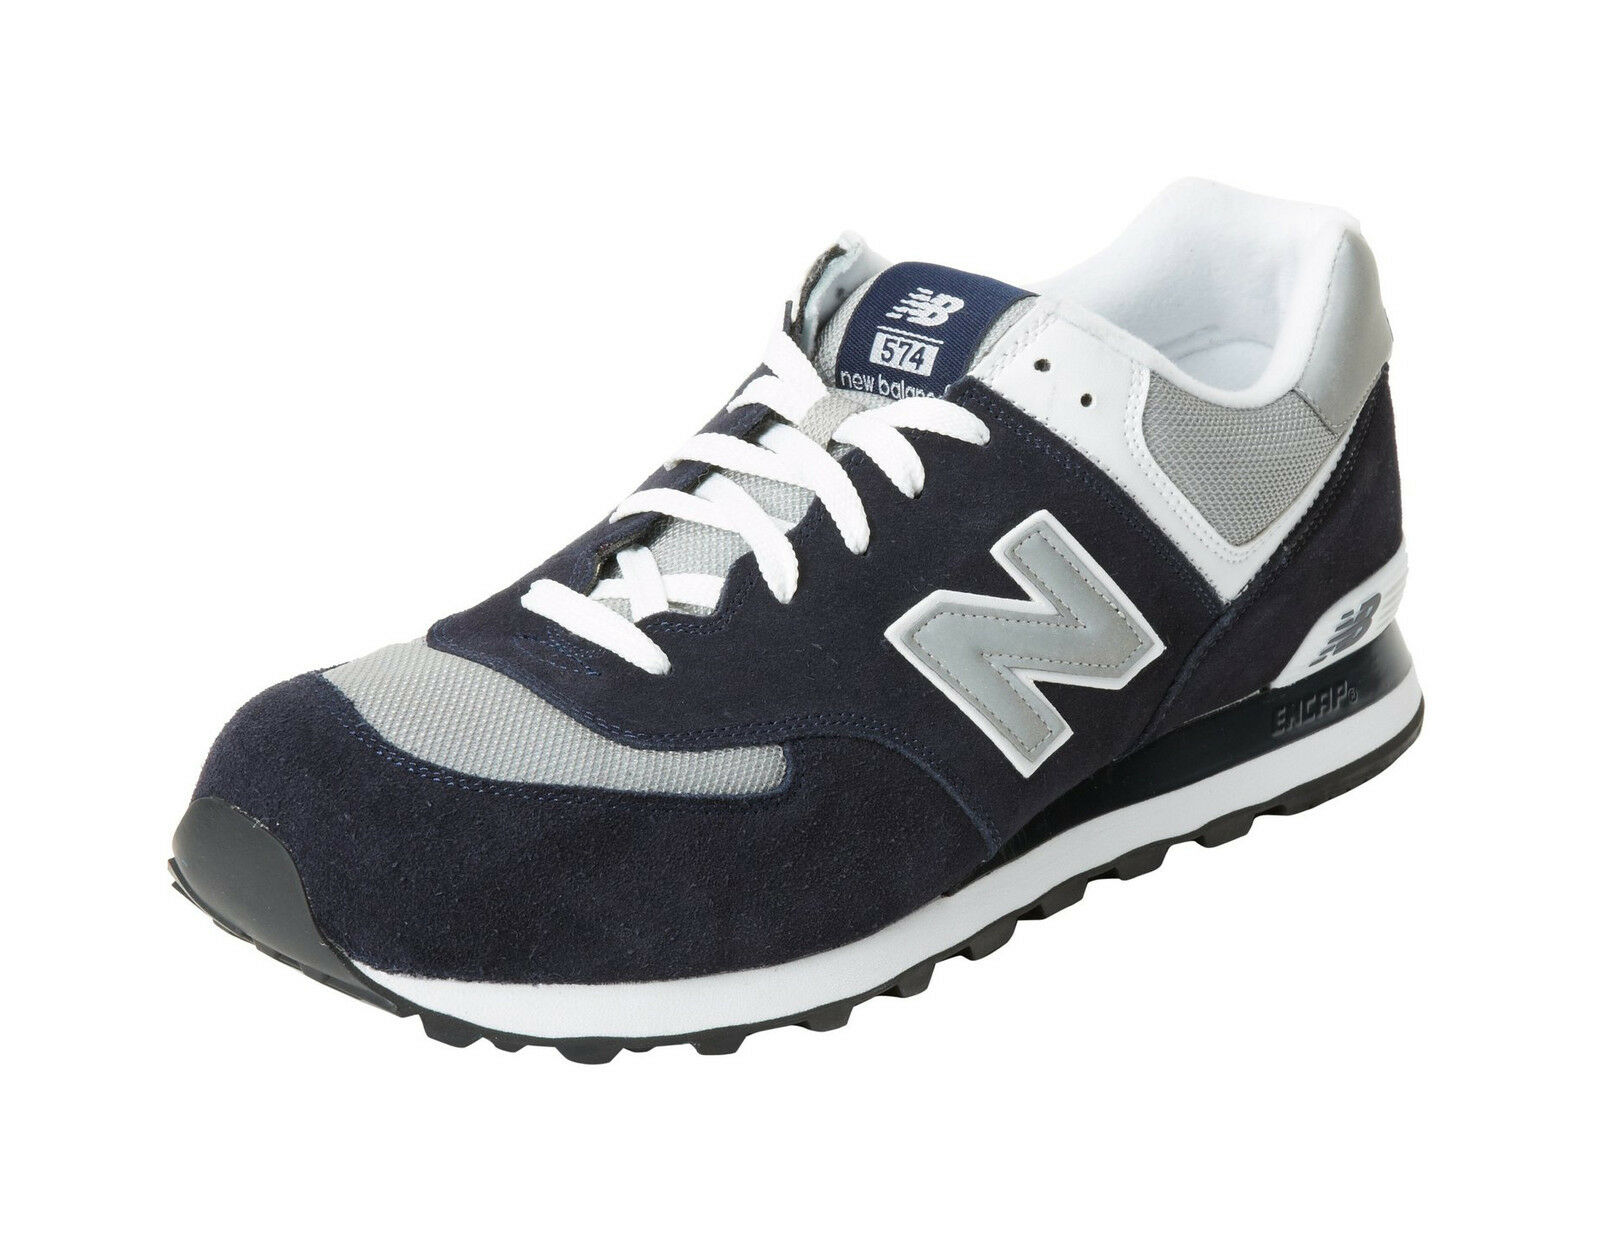 New Balance Shoes 574 Men Running Sneakers M574BGS Navy Blue Gray